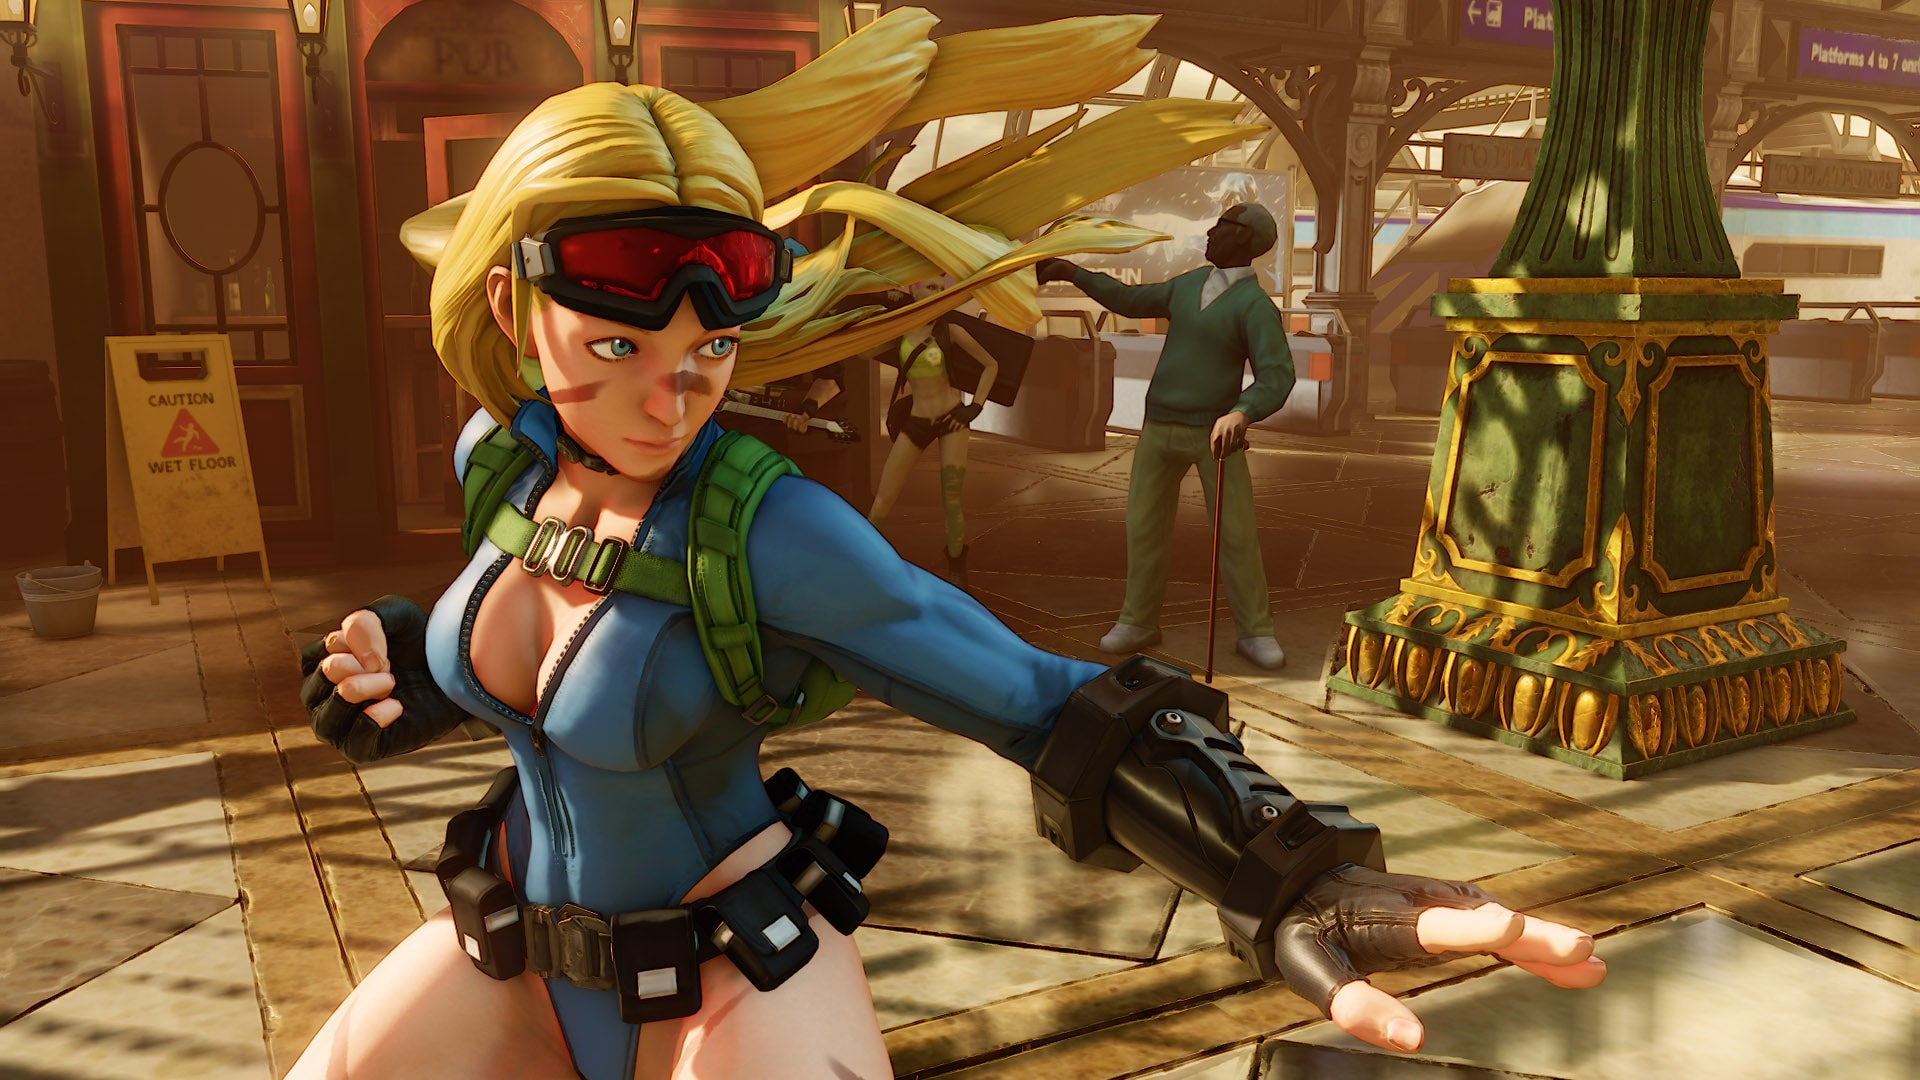 After Complaints, Street Fighter's Cammy Looks Kinda Different